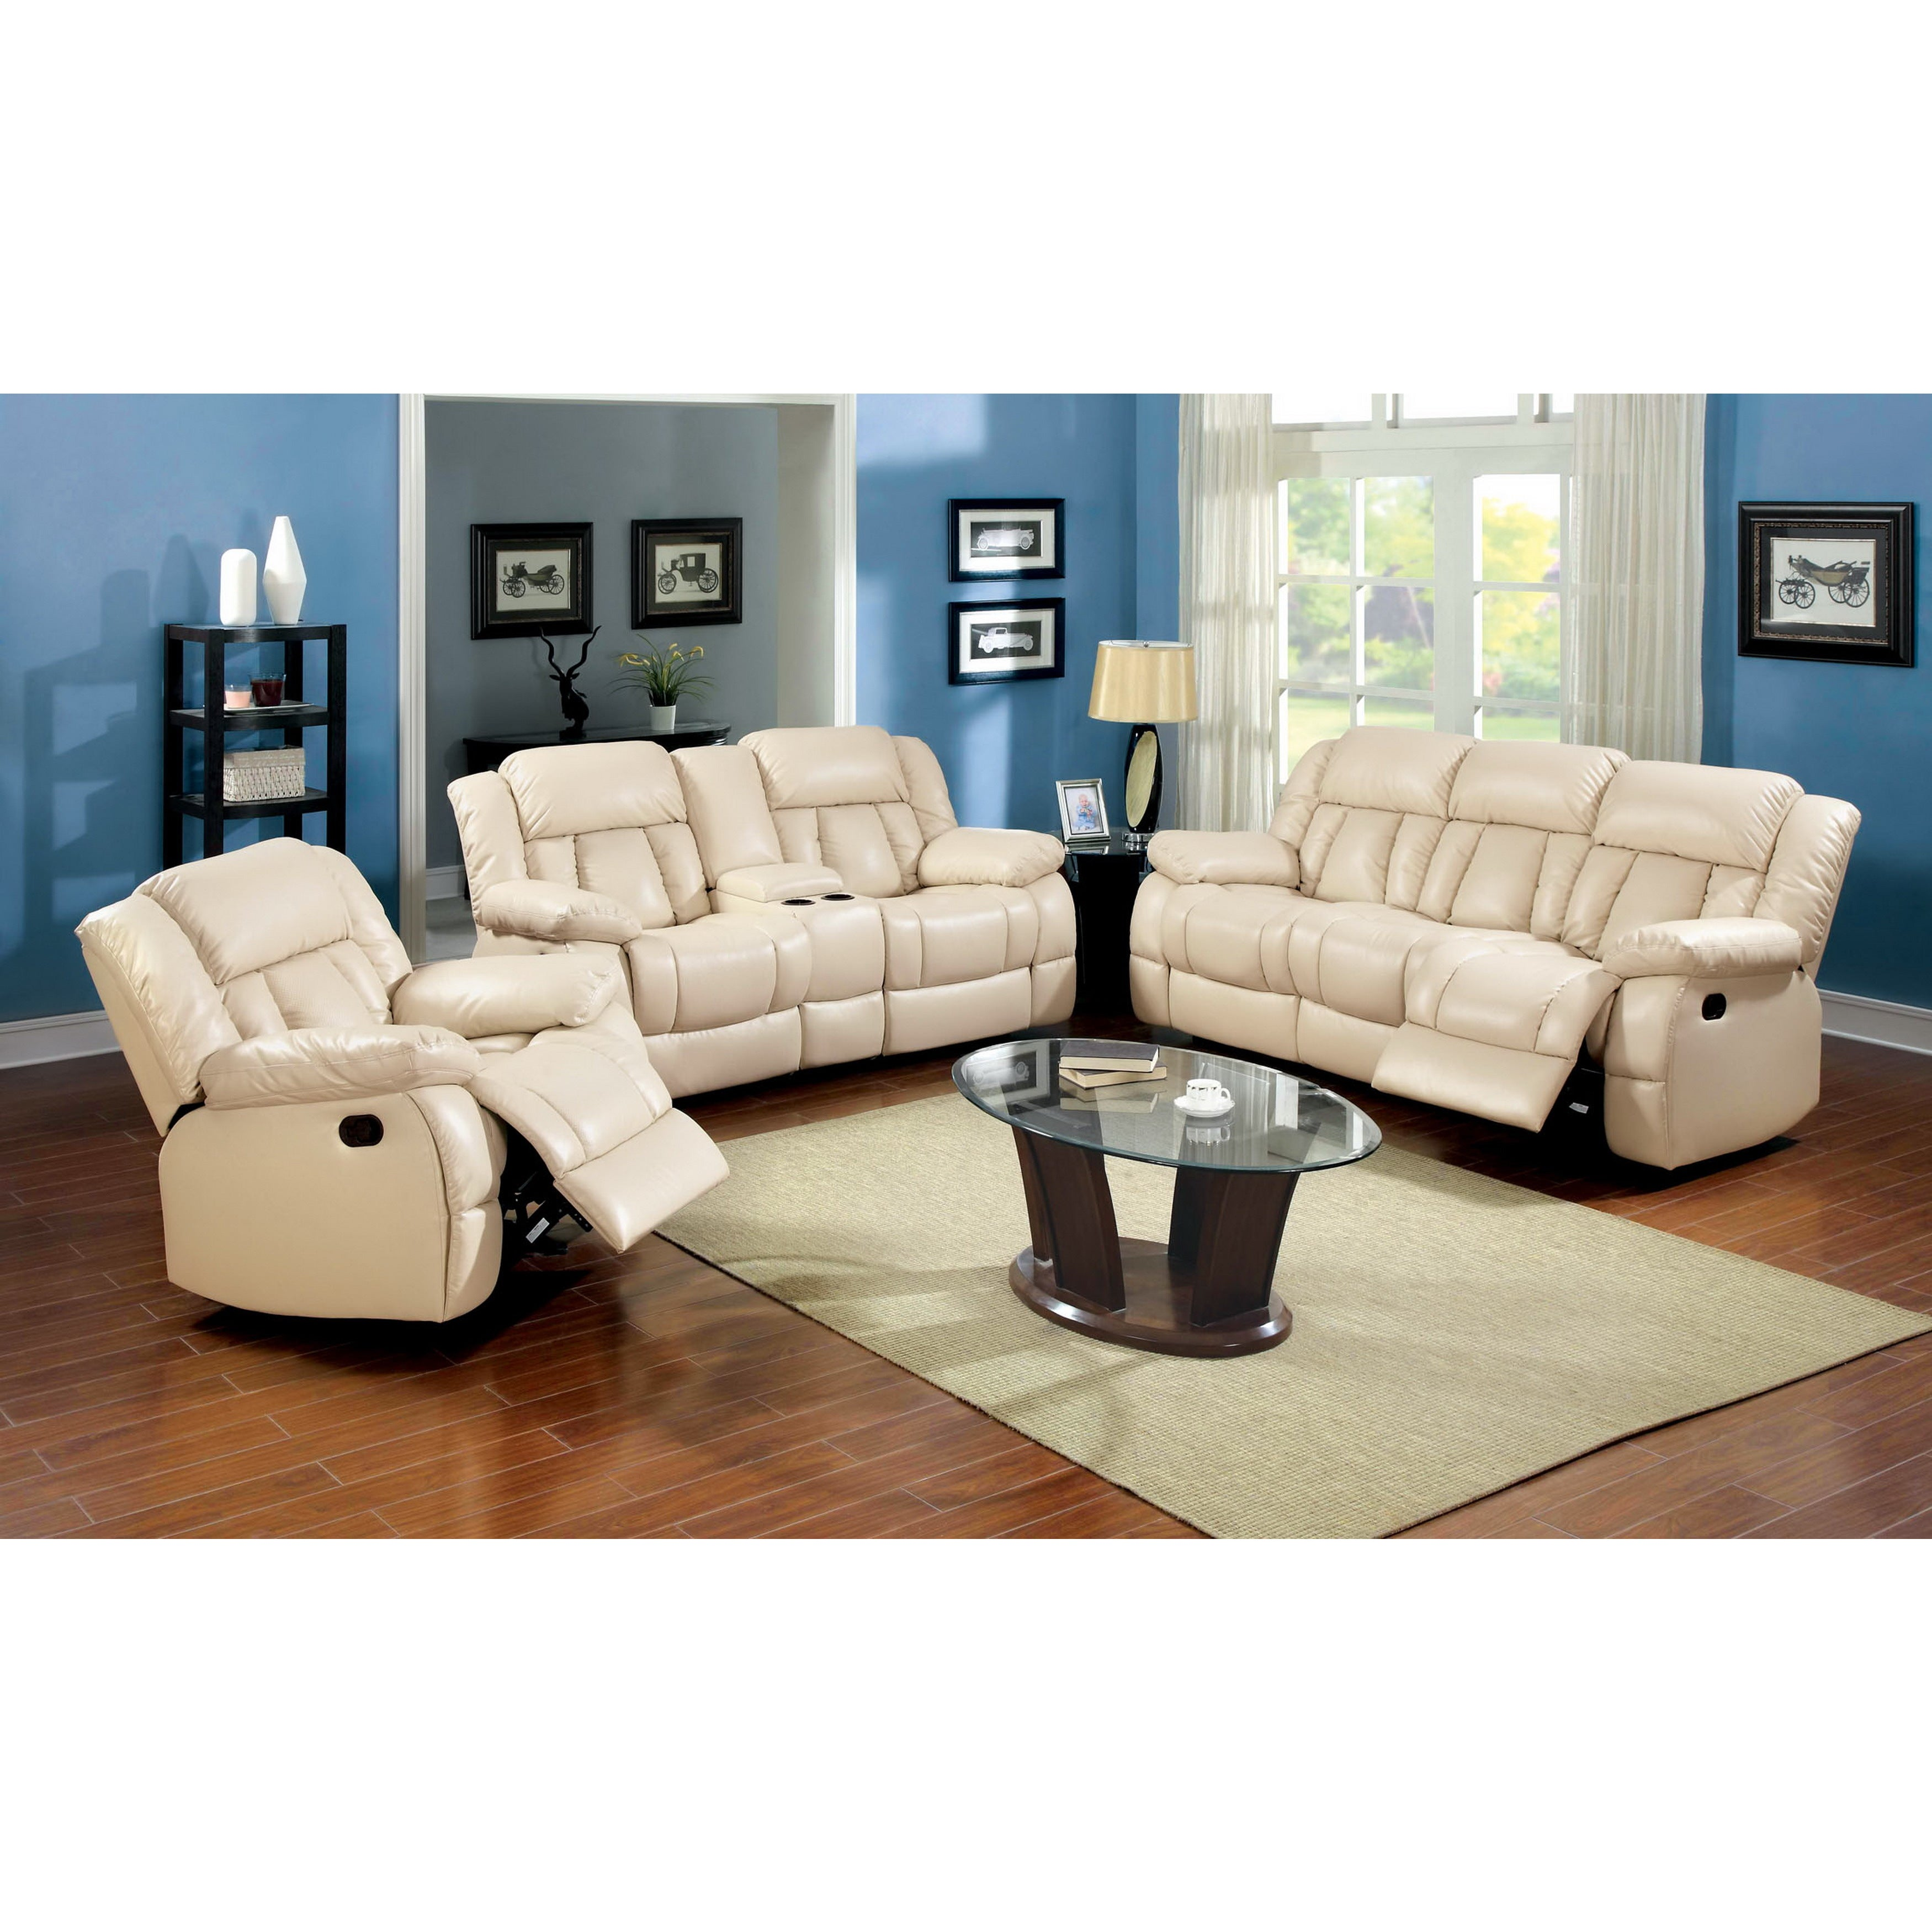 Furniture Of America Barbz 2 Piece Bonded Leather Recliner Sofa And Loveseat Set Ivory Free Shipping Today 8896501